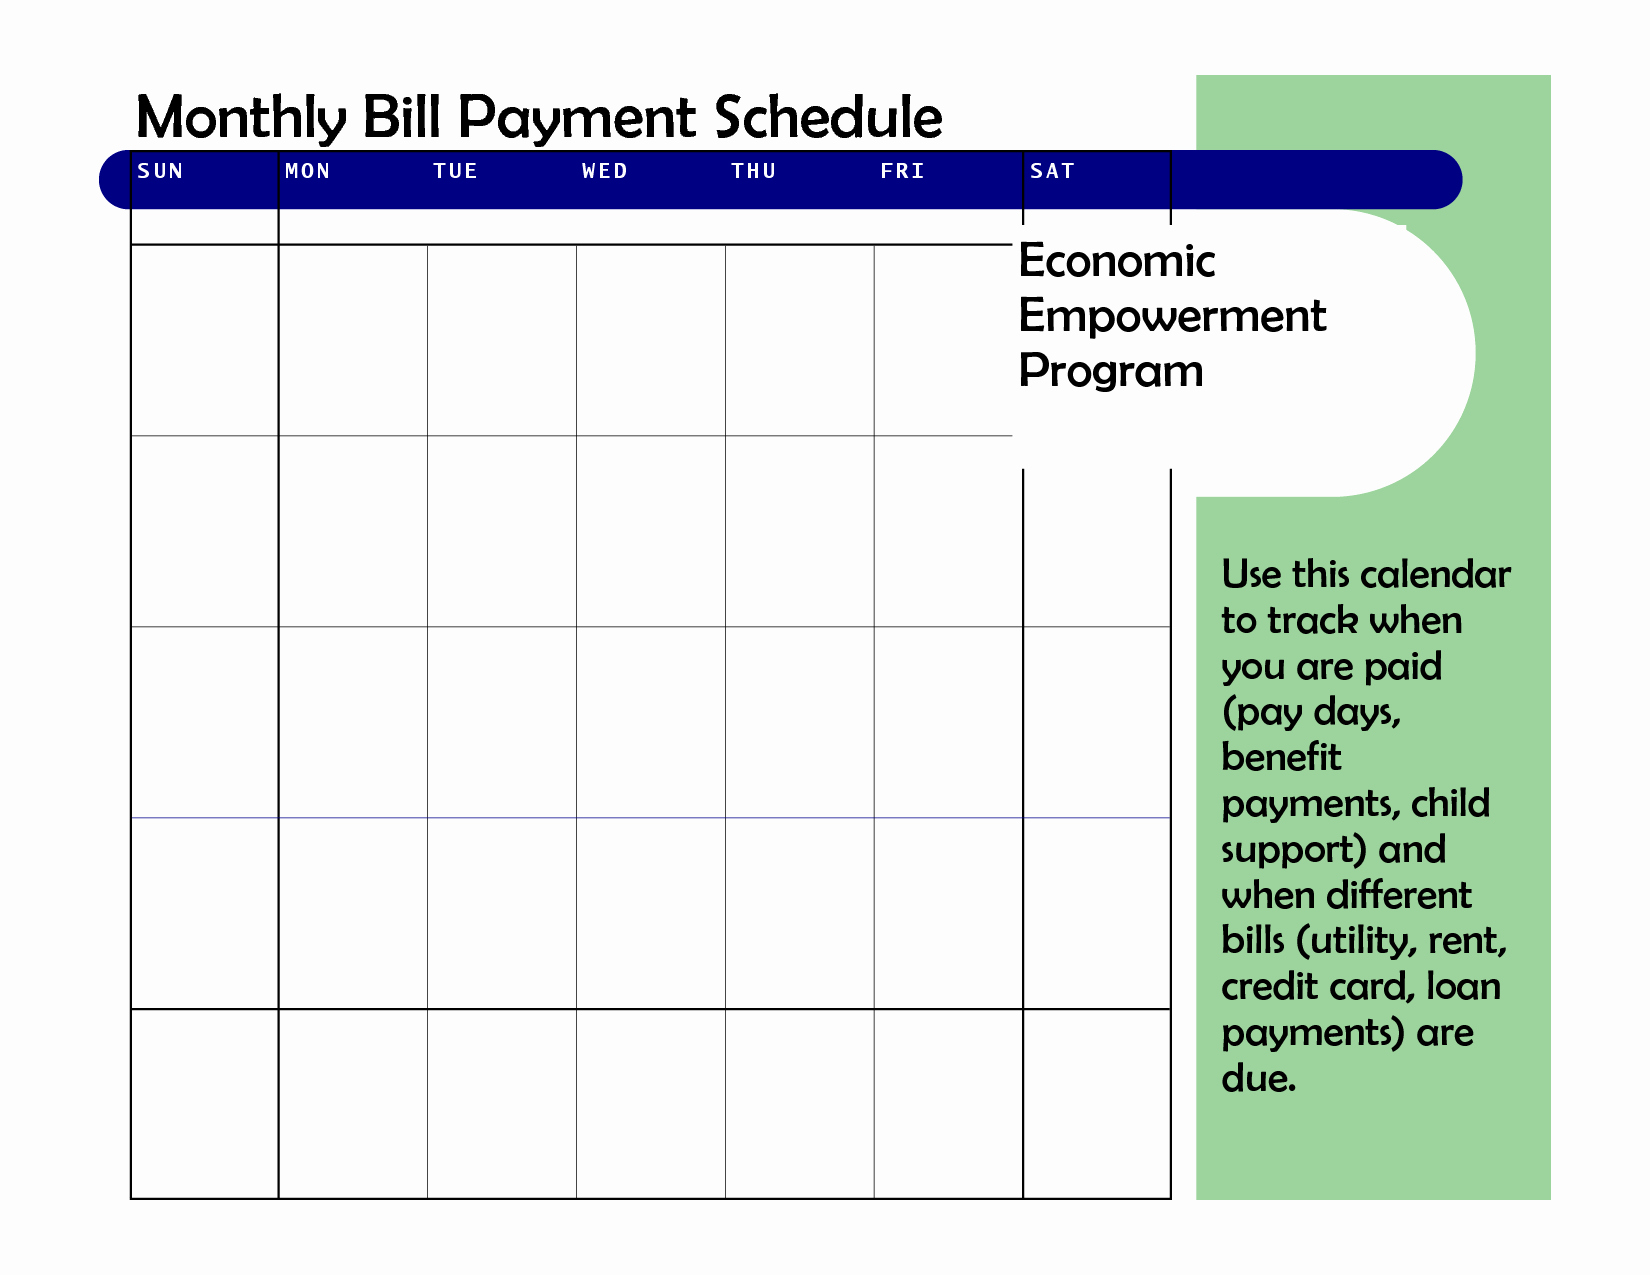 Bill Payment Schedule Template New Monthly Based Bill Payment Schedule Template Vatansun